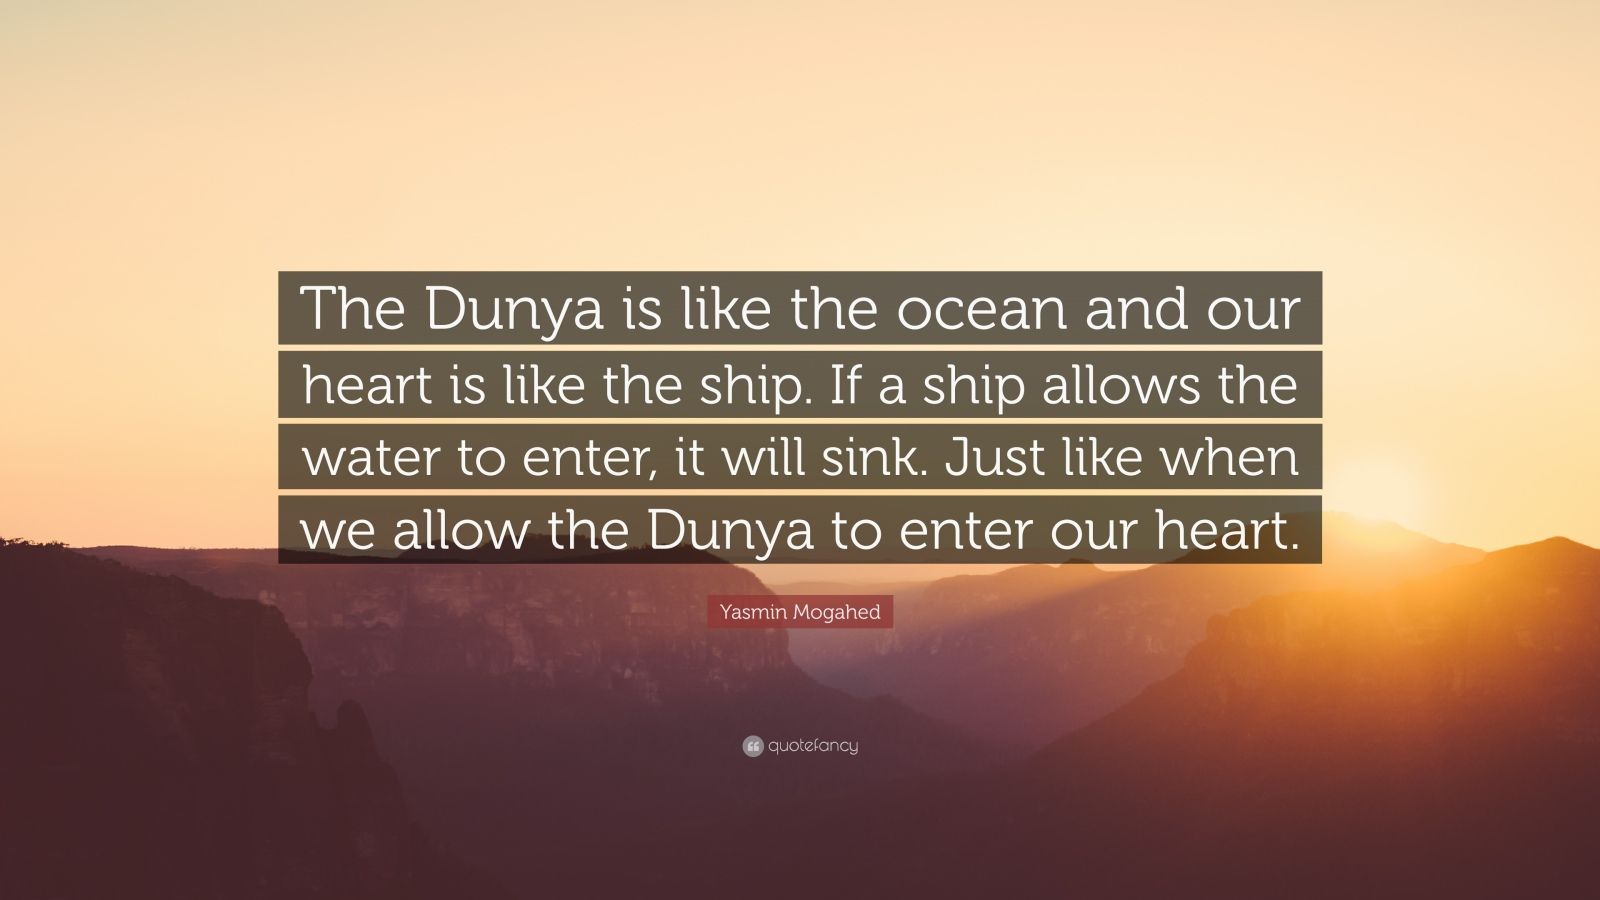 """Yasmin Mogahed Quote: """"The Dunya is like the ocean and our heart is like the ship. If a ship allows the water to enter, it will sink. Just like when we allow the Dunya to enter our heart."""""""